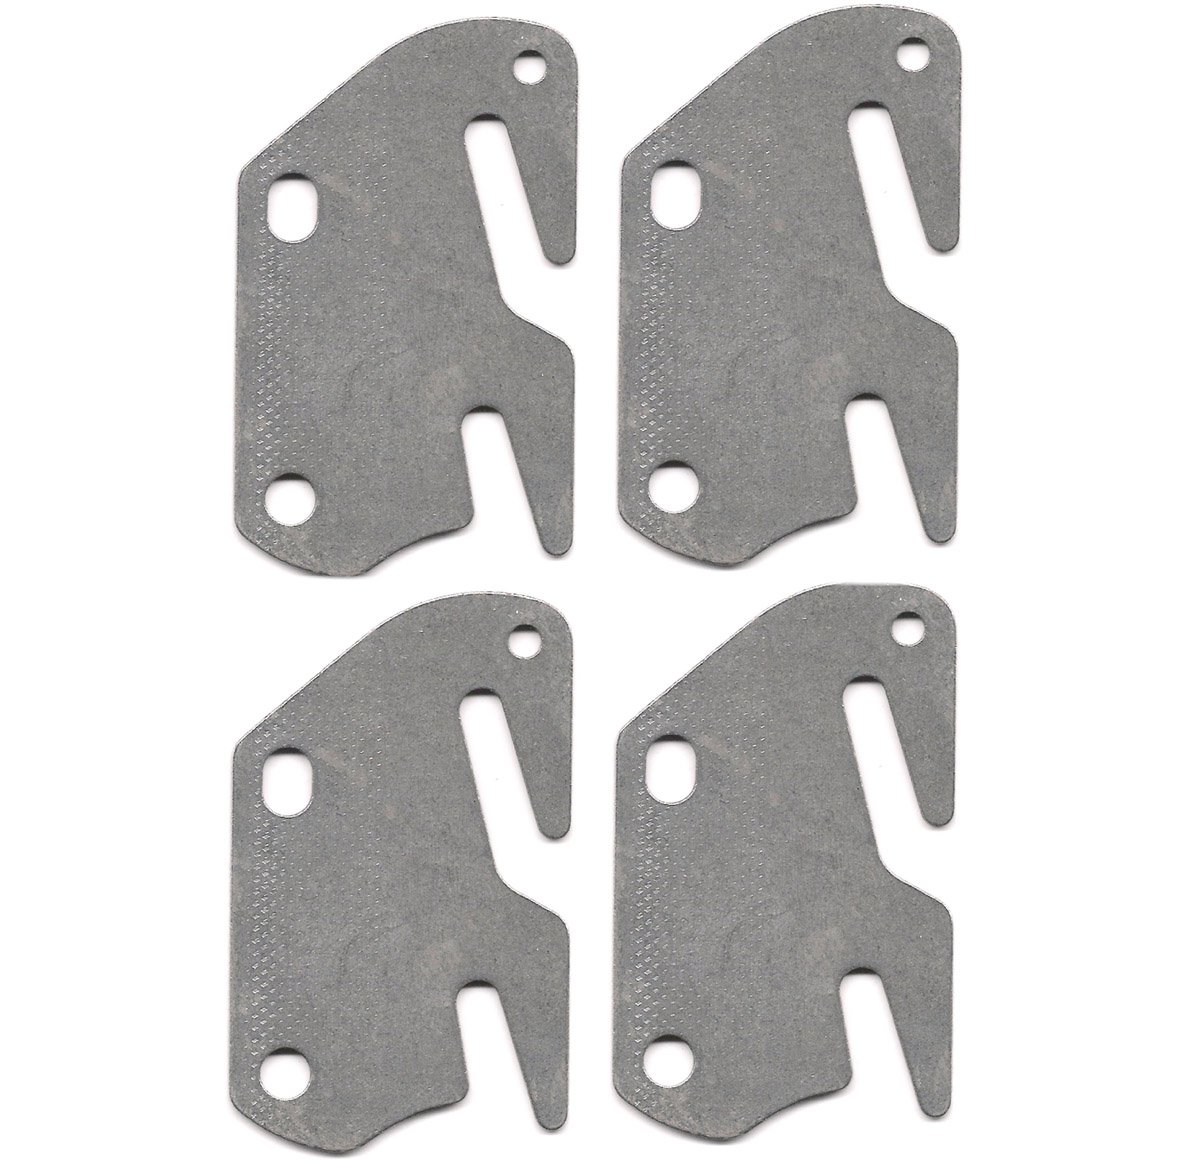 4 bed rail double hook plates fits 2 bracket or bed post